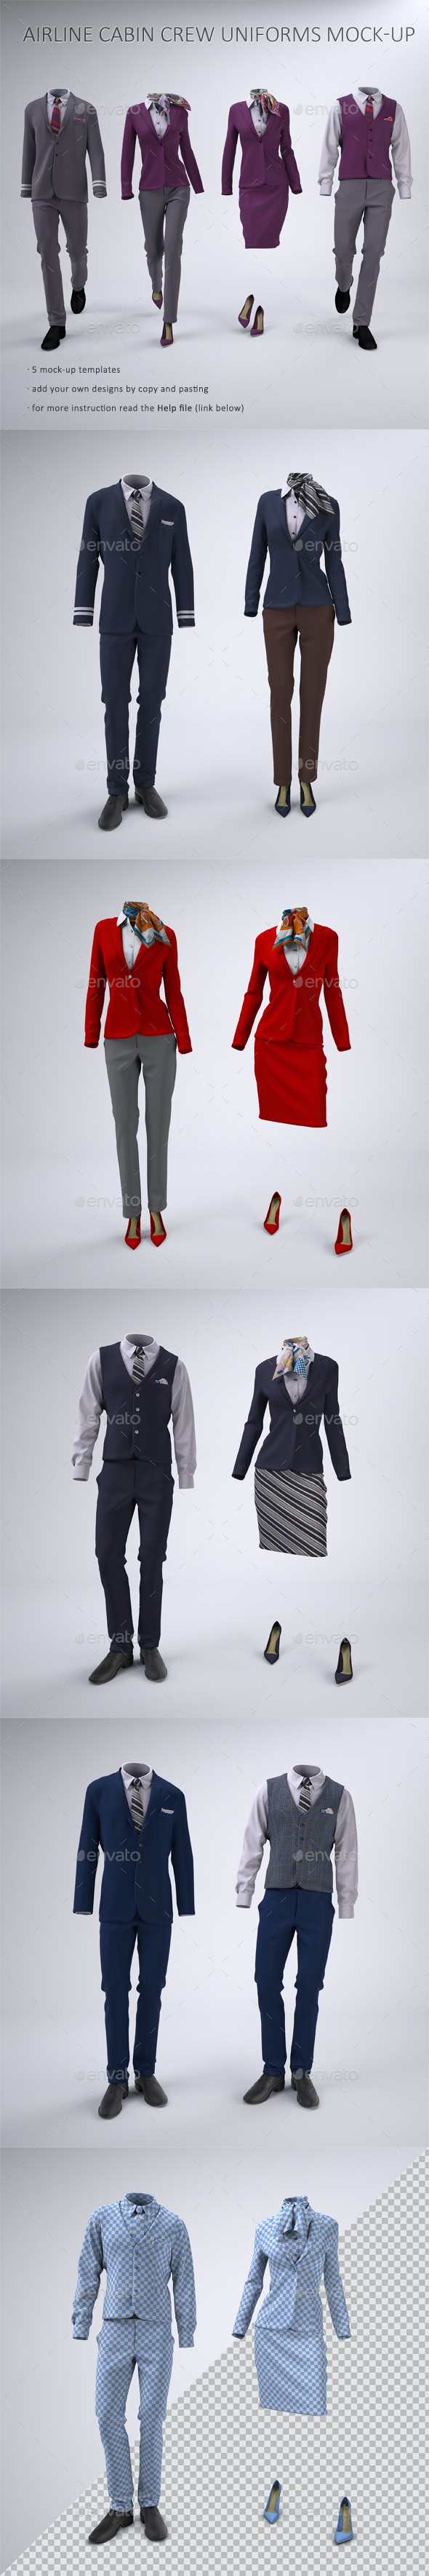 Airline Cabin Crew or Hotel Staff Uniforms Mock-Up - Apparel Product Mock-Ups